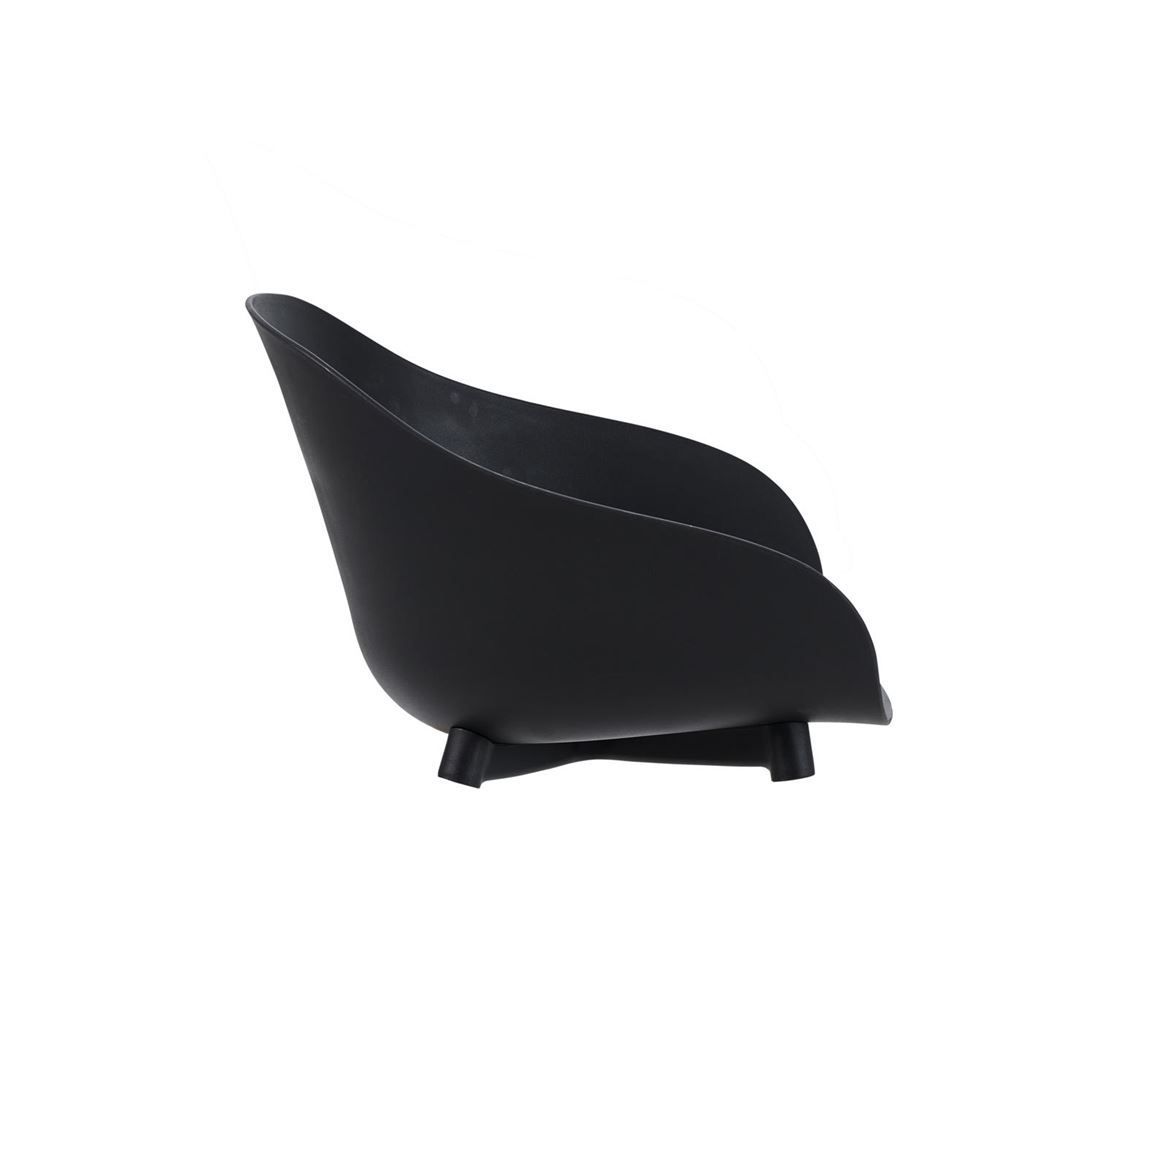 FRAY Chaise noir H 77,5 x Larg. 54,5 x Long. 55 cm_fray-chaise-noir-h-77,5-x-larg--54,5-x-long--55-cm